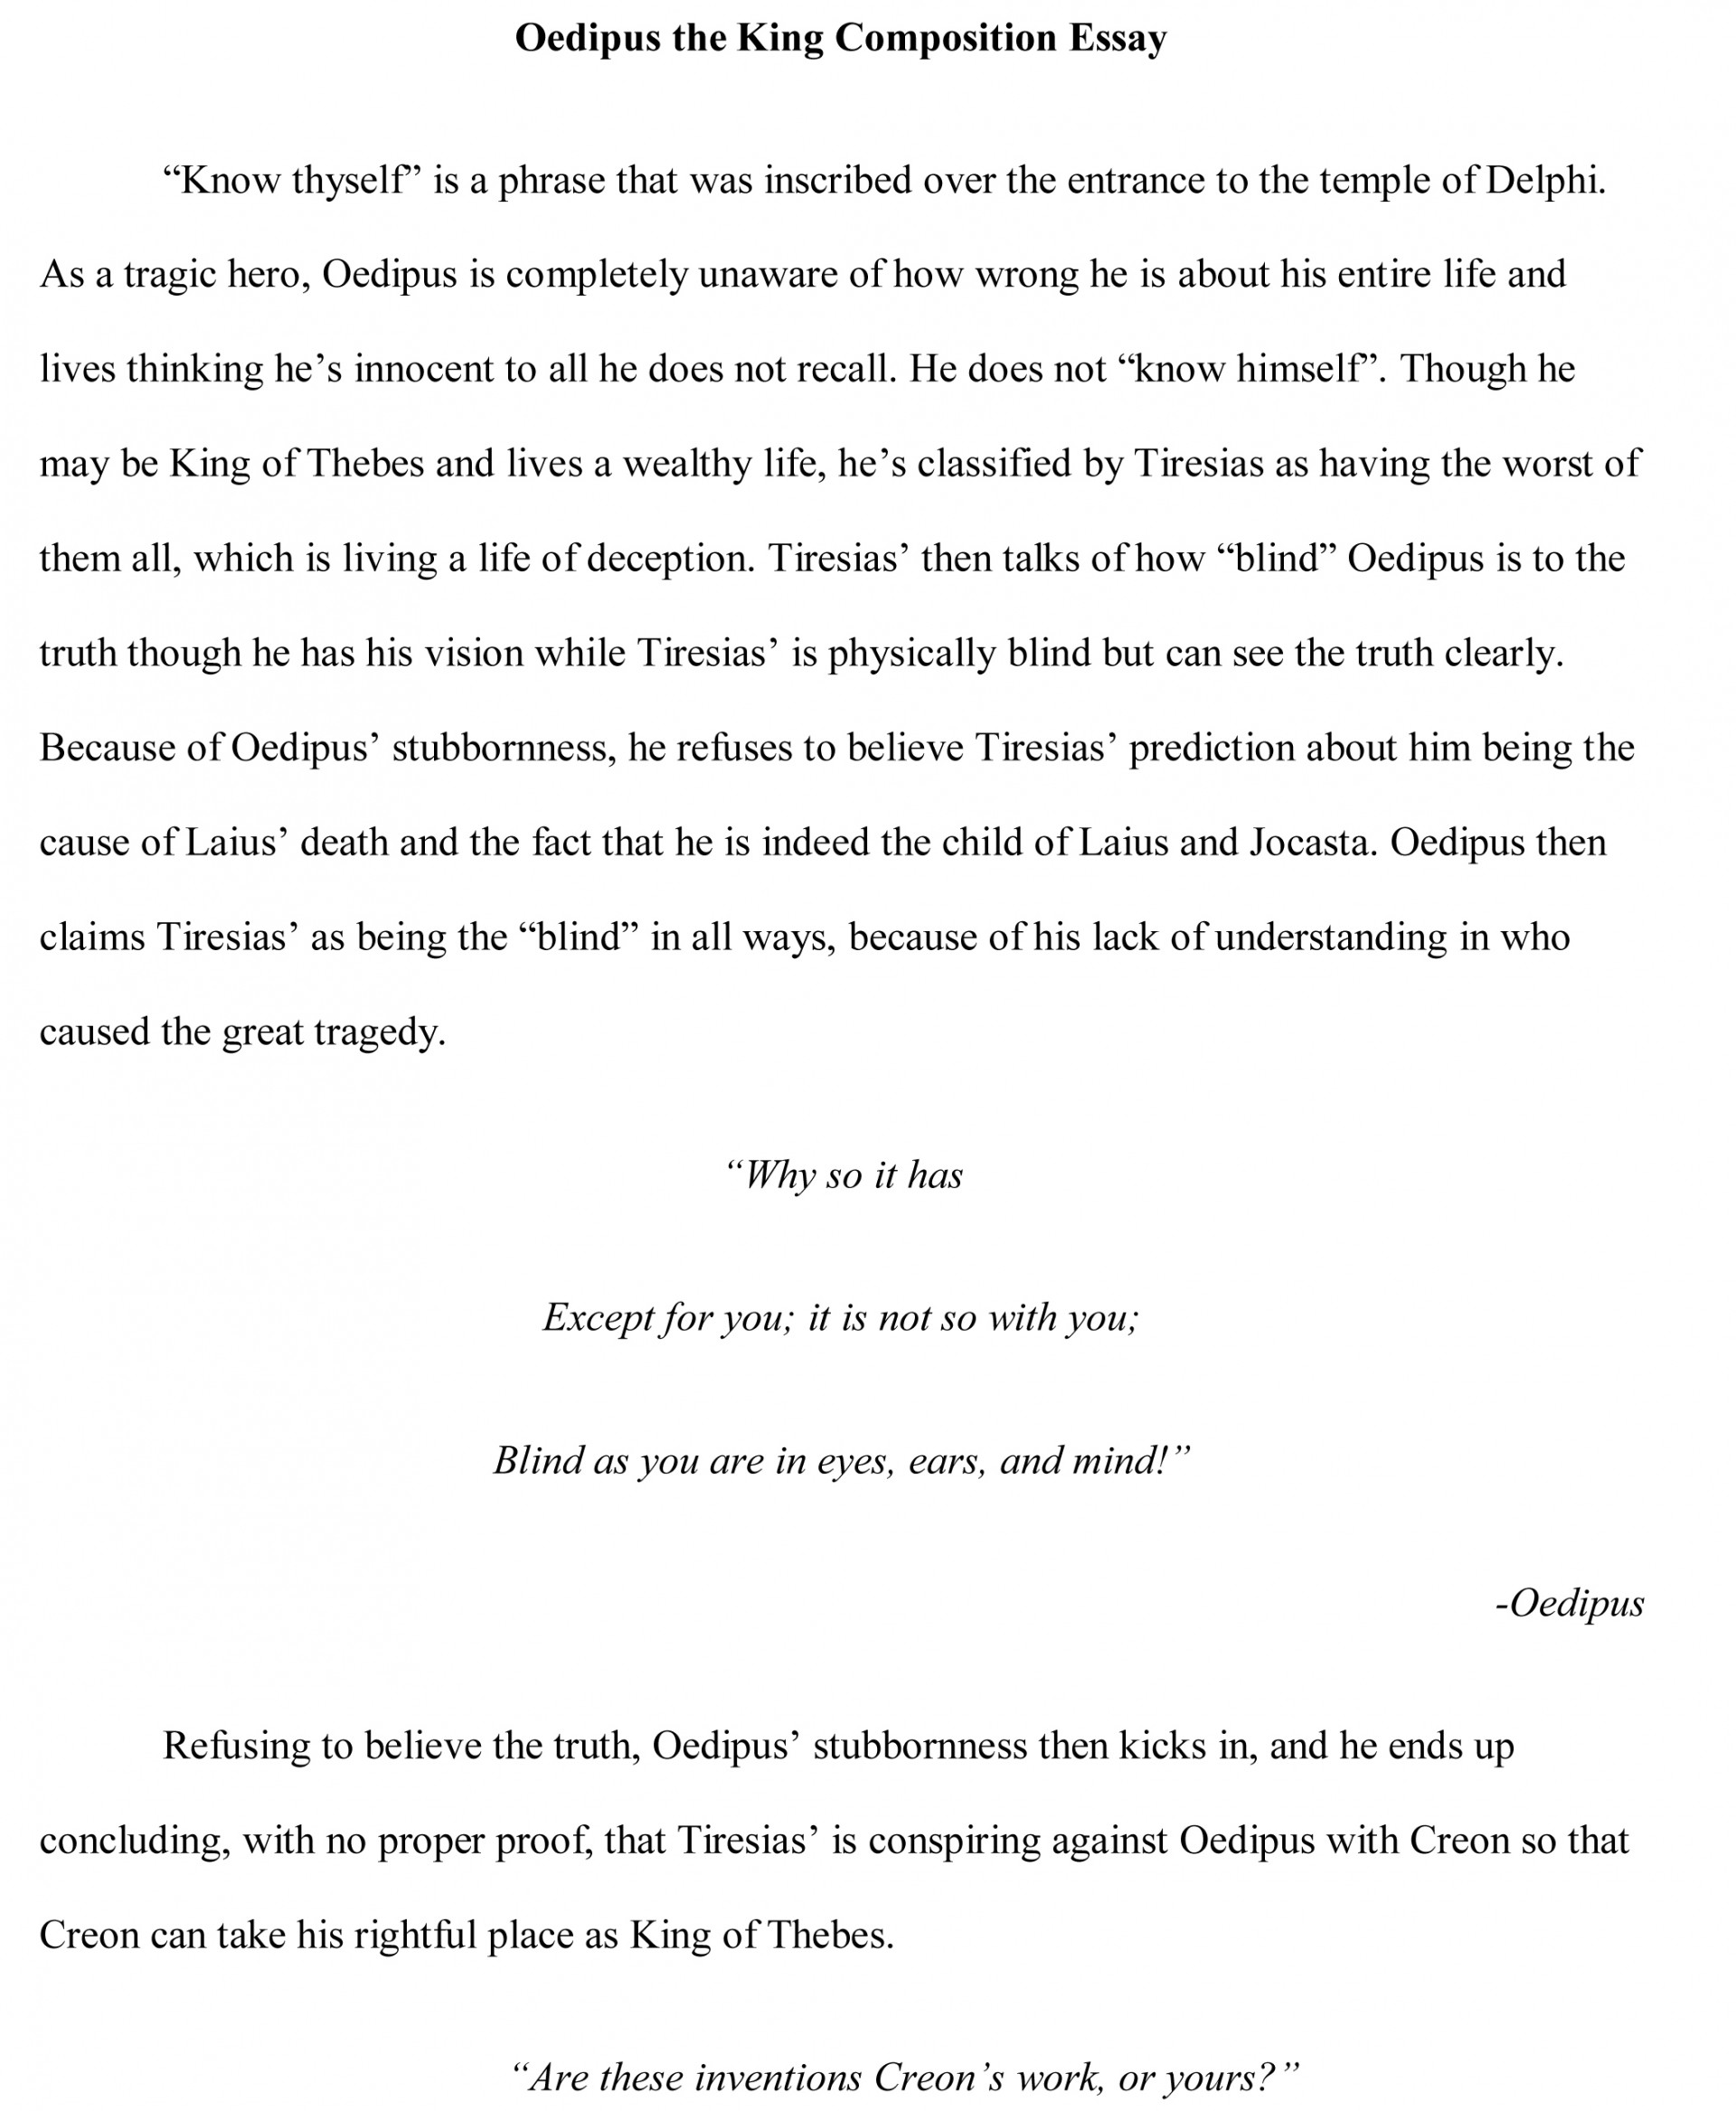 003 Essay Example Oedipus Free Sample My Real Life Fascinating Hero Unsung In Secret As A 1920